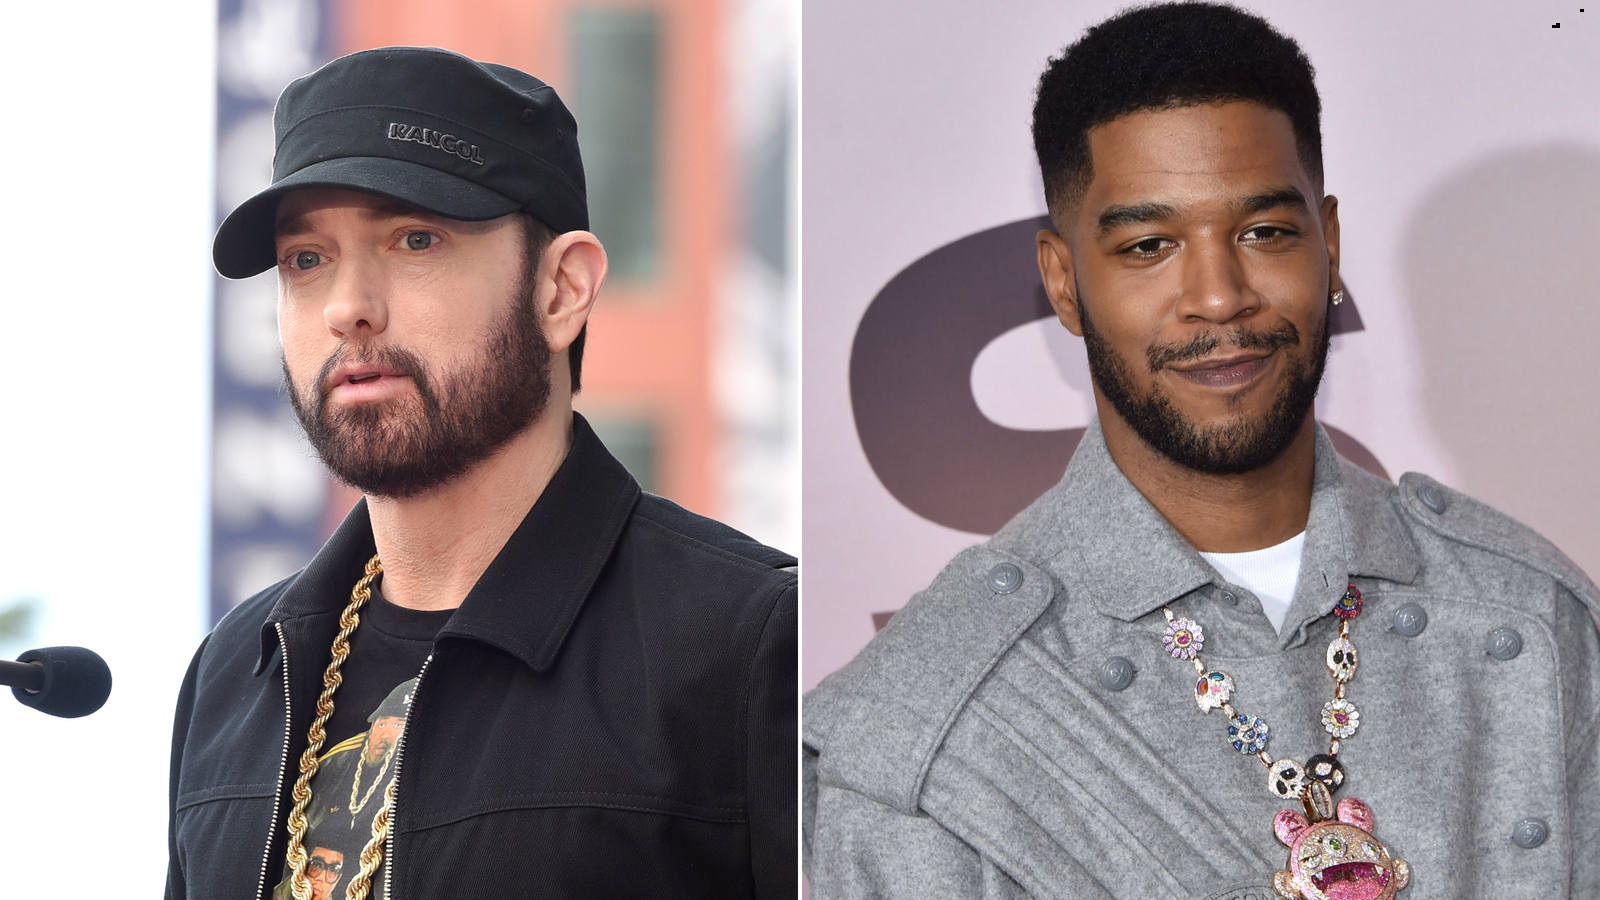 Eminem slams people who refuse to wear masks in new song with Kid Cudi